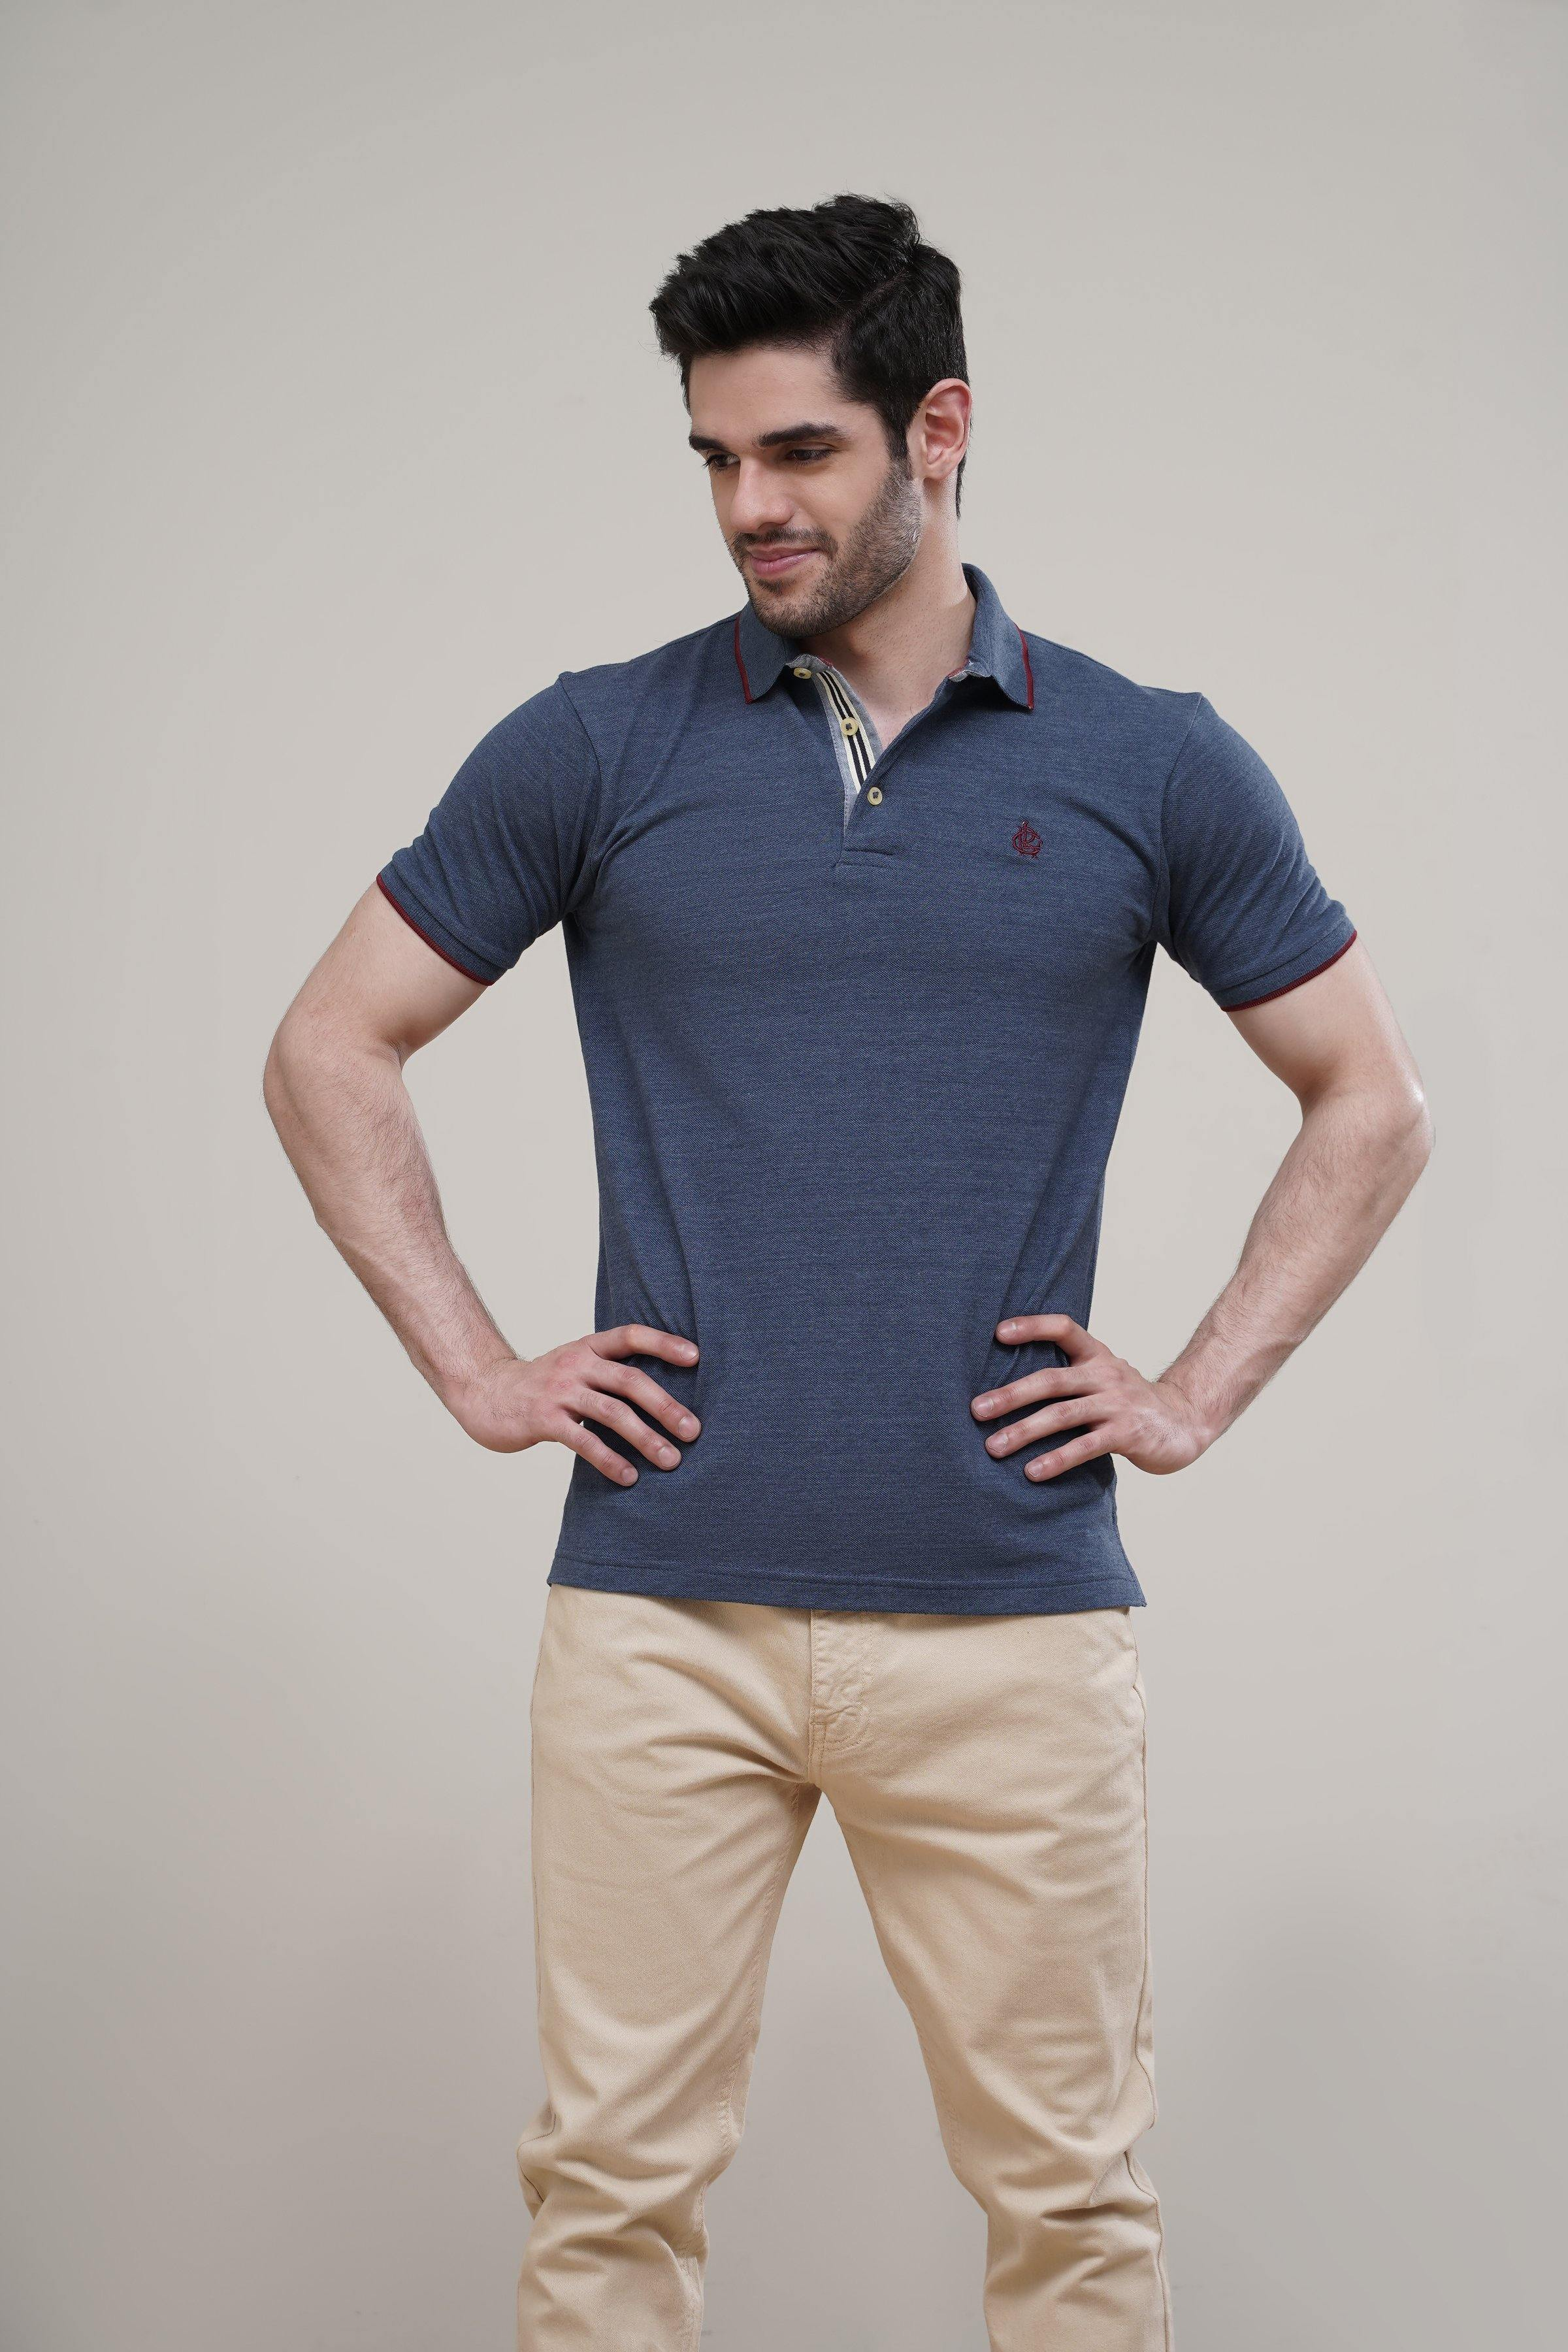 POLO SHIRT TIPPING COLLAR BLUE - Charcoal Clothing